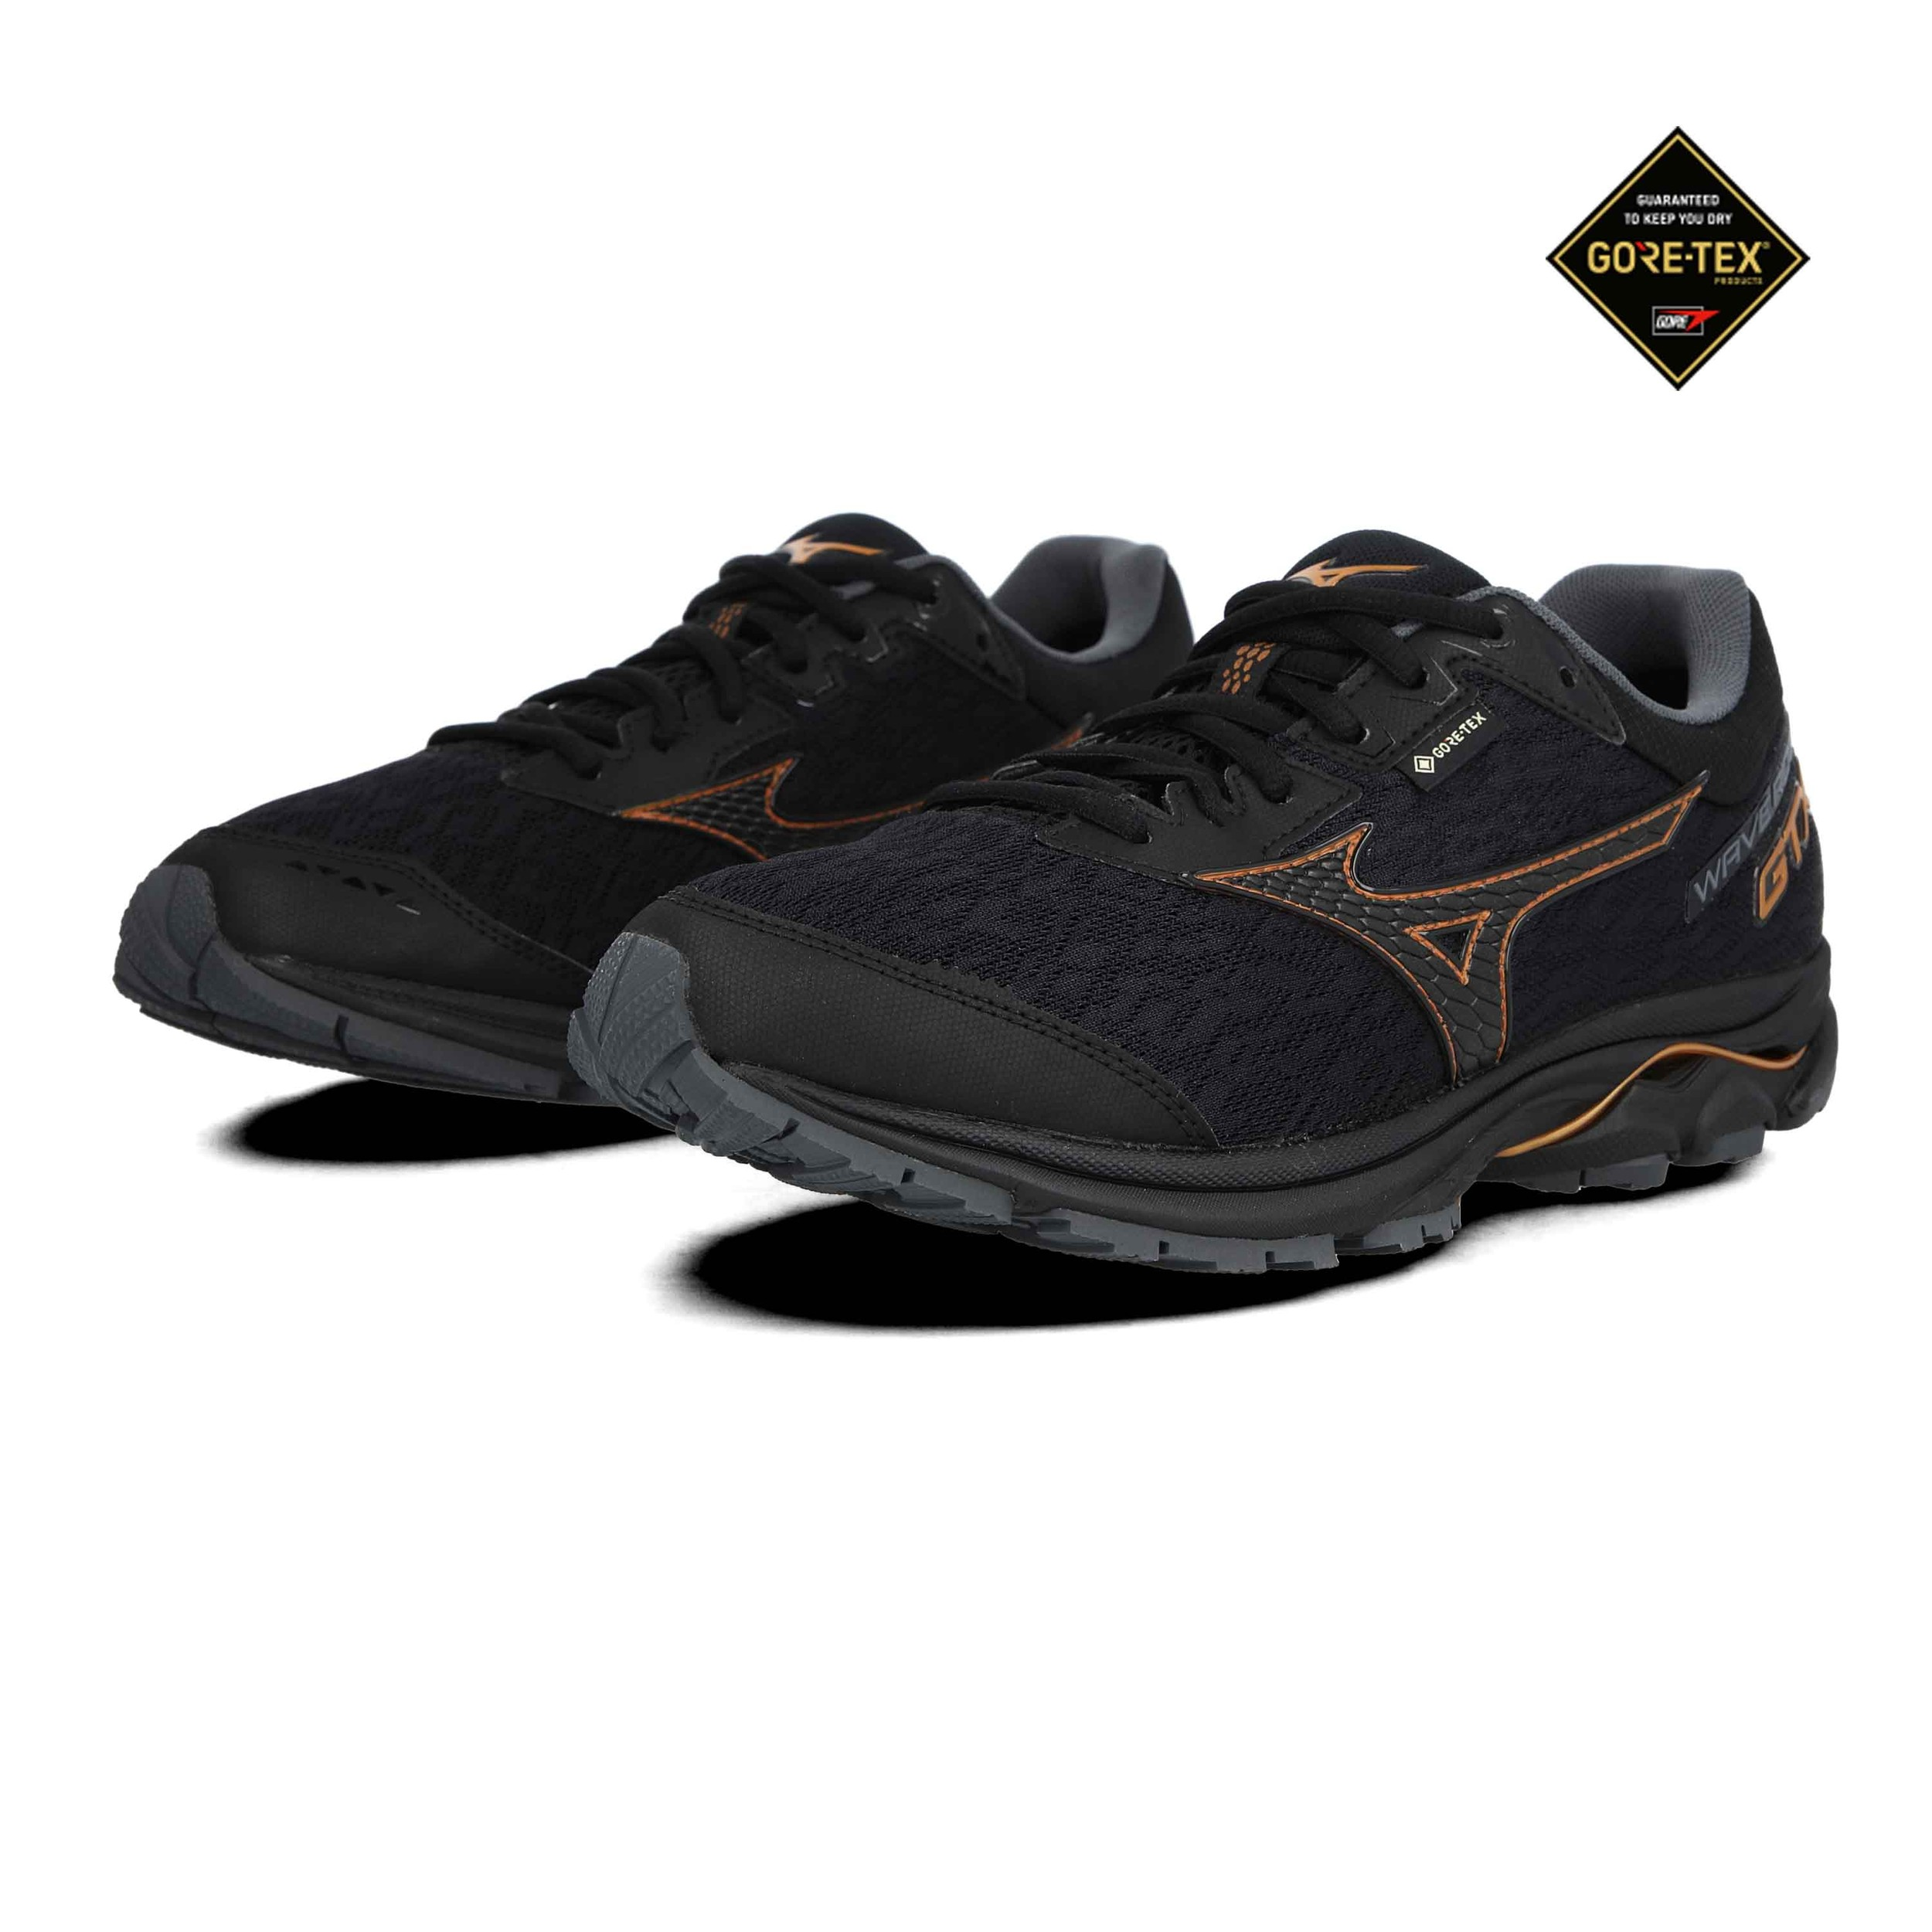 Mizuno Wave Rider GORE-TEX Running Shoes - SS20